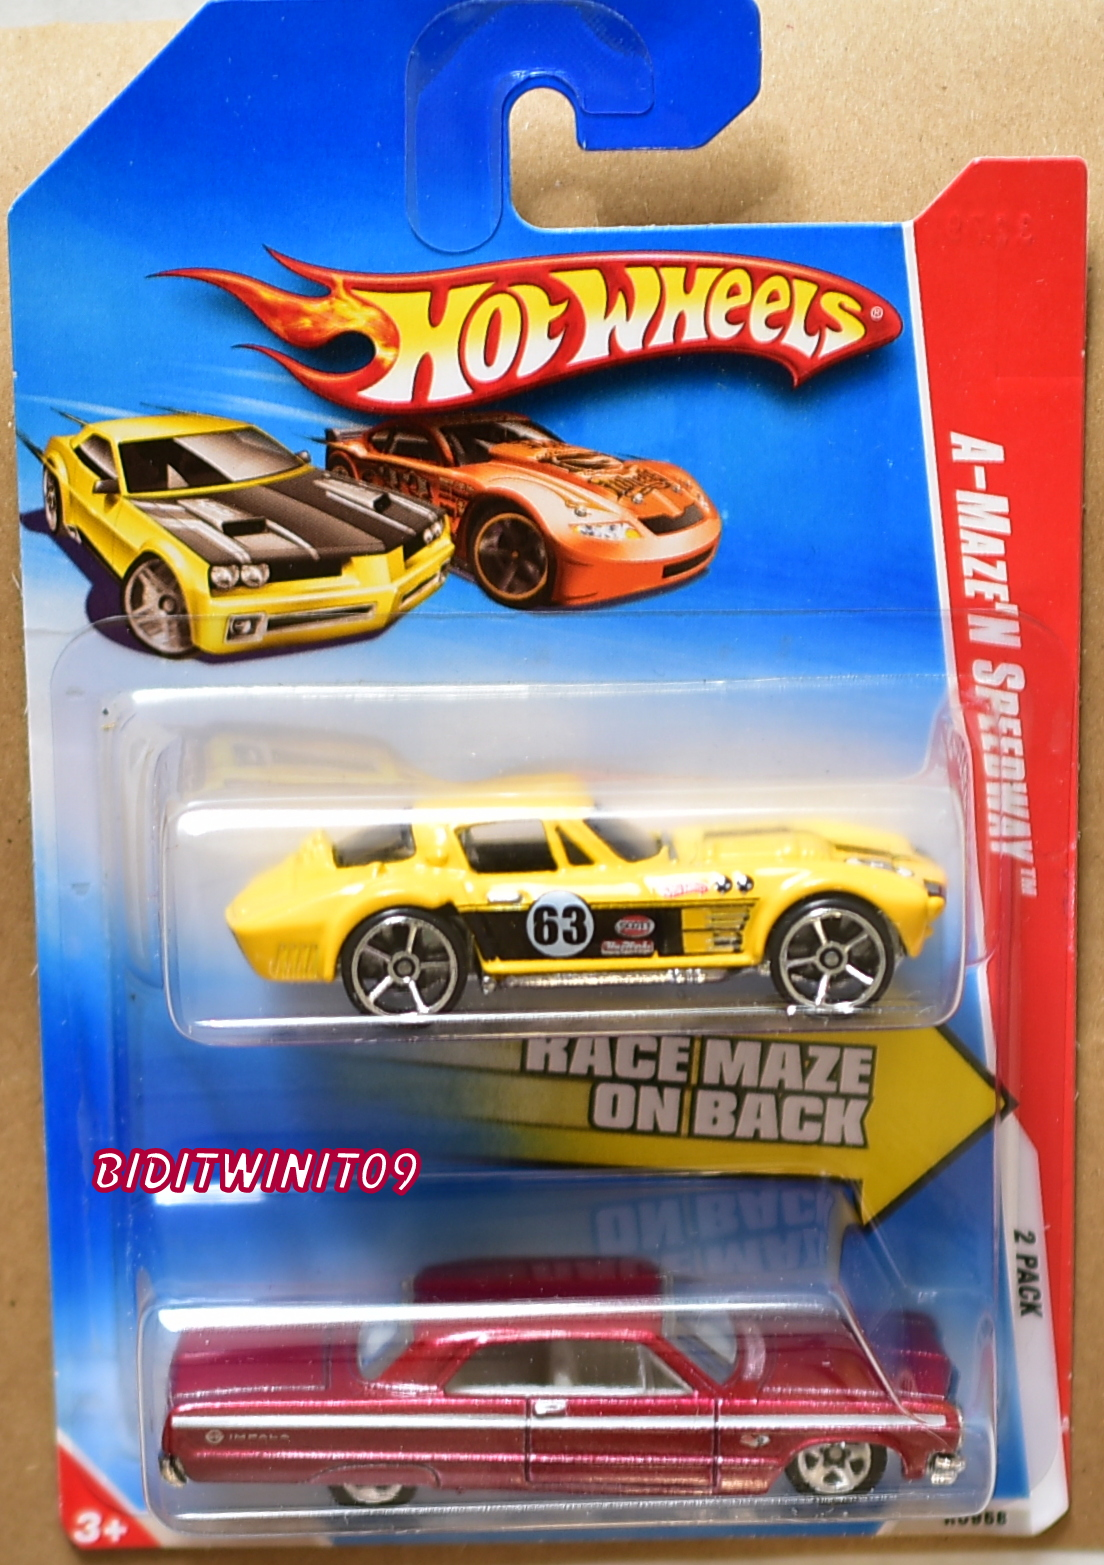 HOT WHEELS 2010 A-MAZE'N SPEEDWAY CORVETTE GRAND SPORT - '64 IMPALA 2 PACK E+